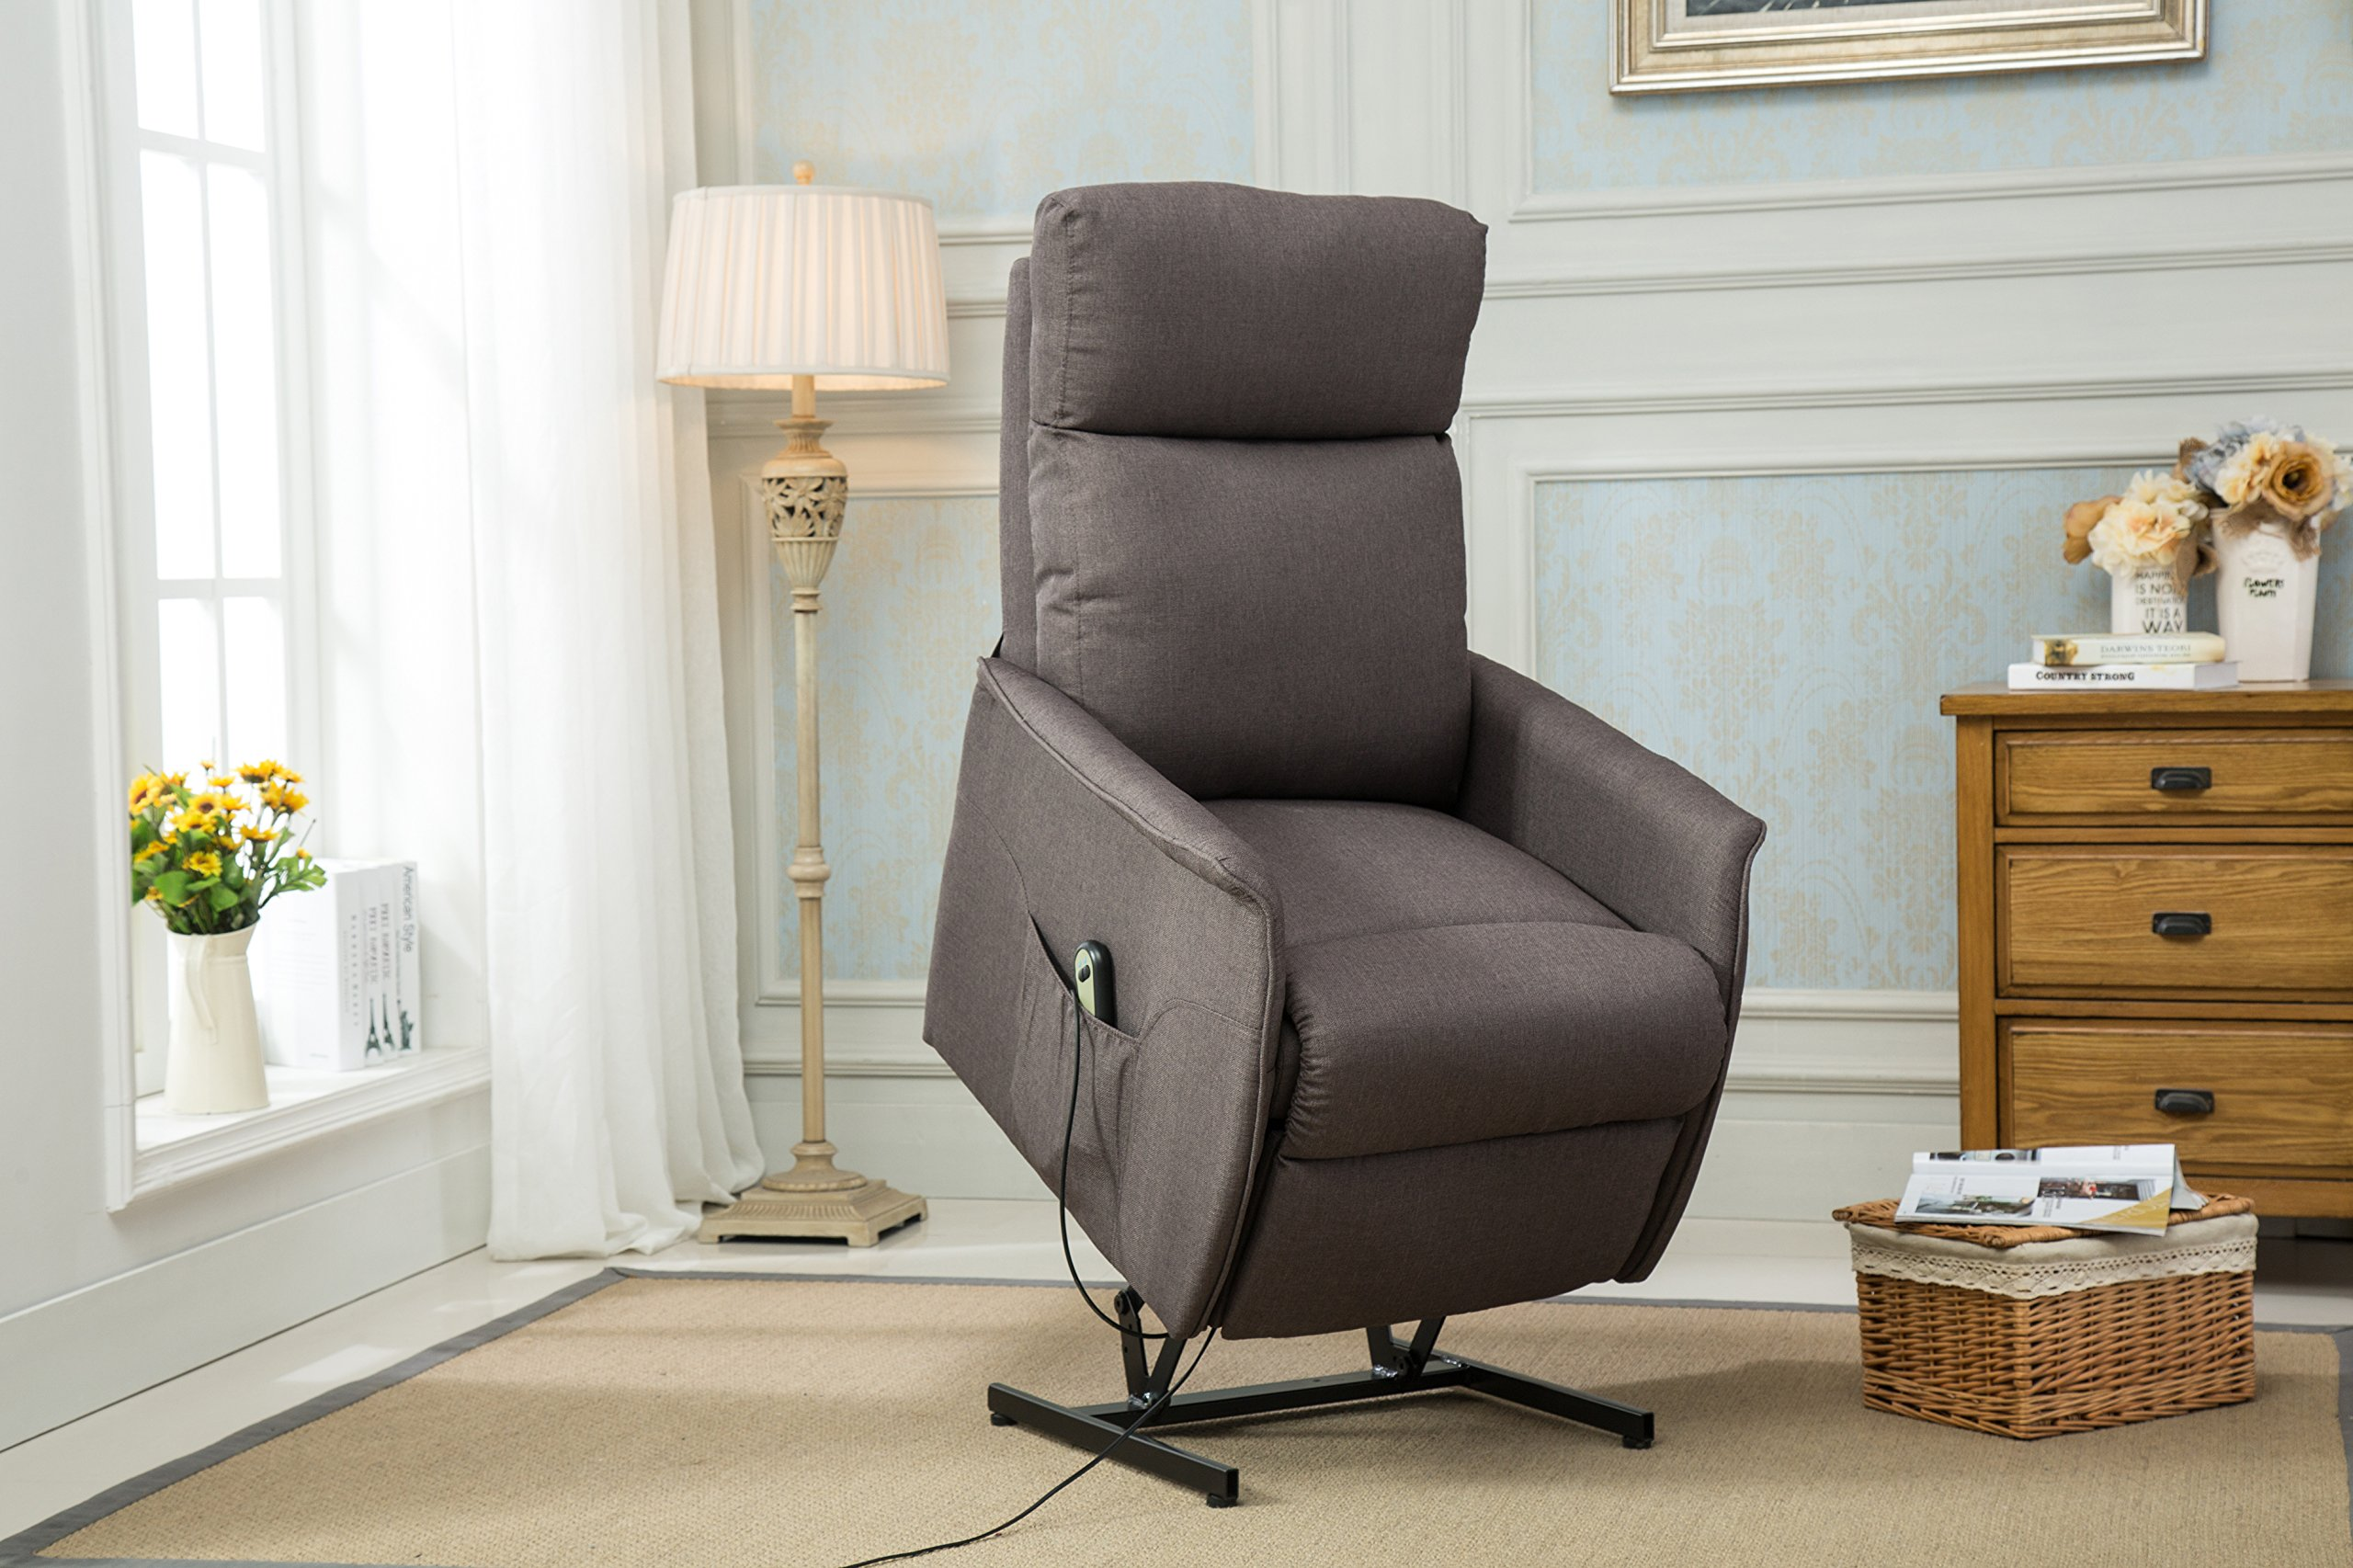 Classic Power Lift Recliner Living Room Chair (Grey)